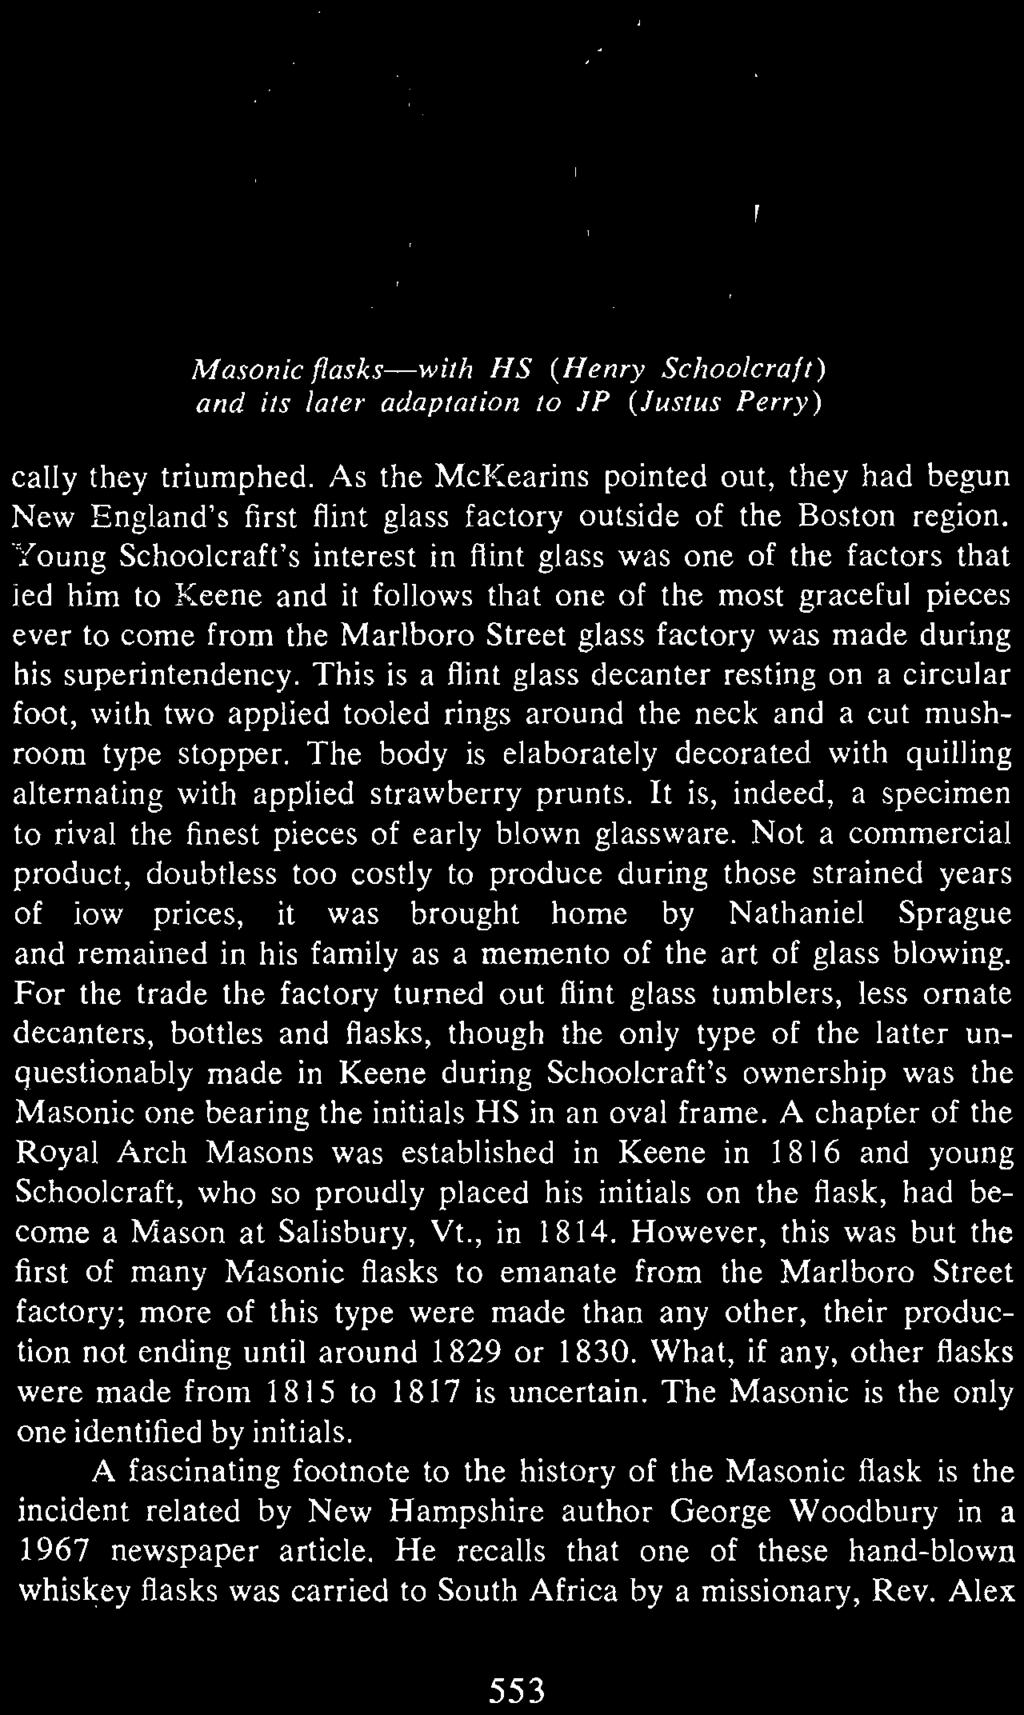 Young Schoolcraft's interest in flint glass was one of the fact ors that led him to Keene and it follows that one of the most graceful piece s ever to come from the Marlboro Street glass factory was